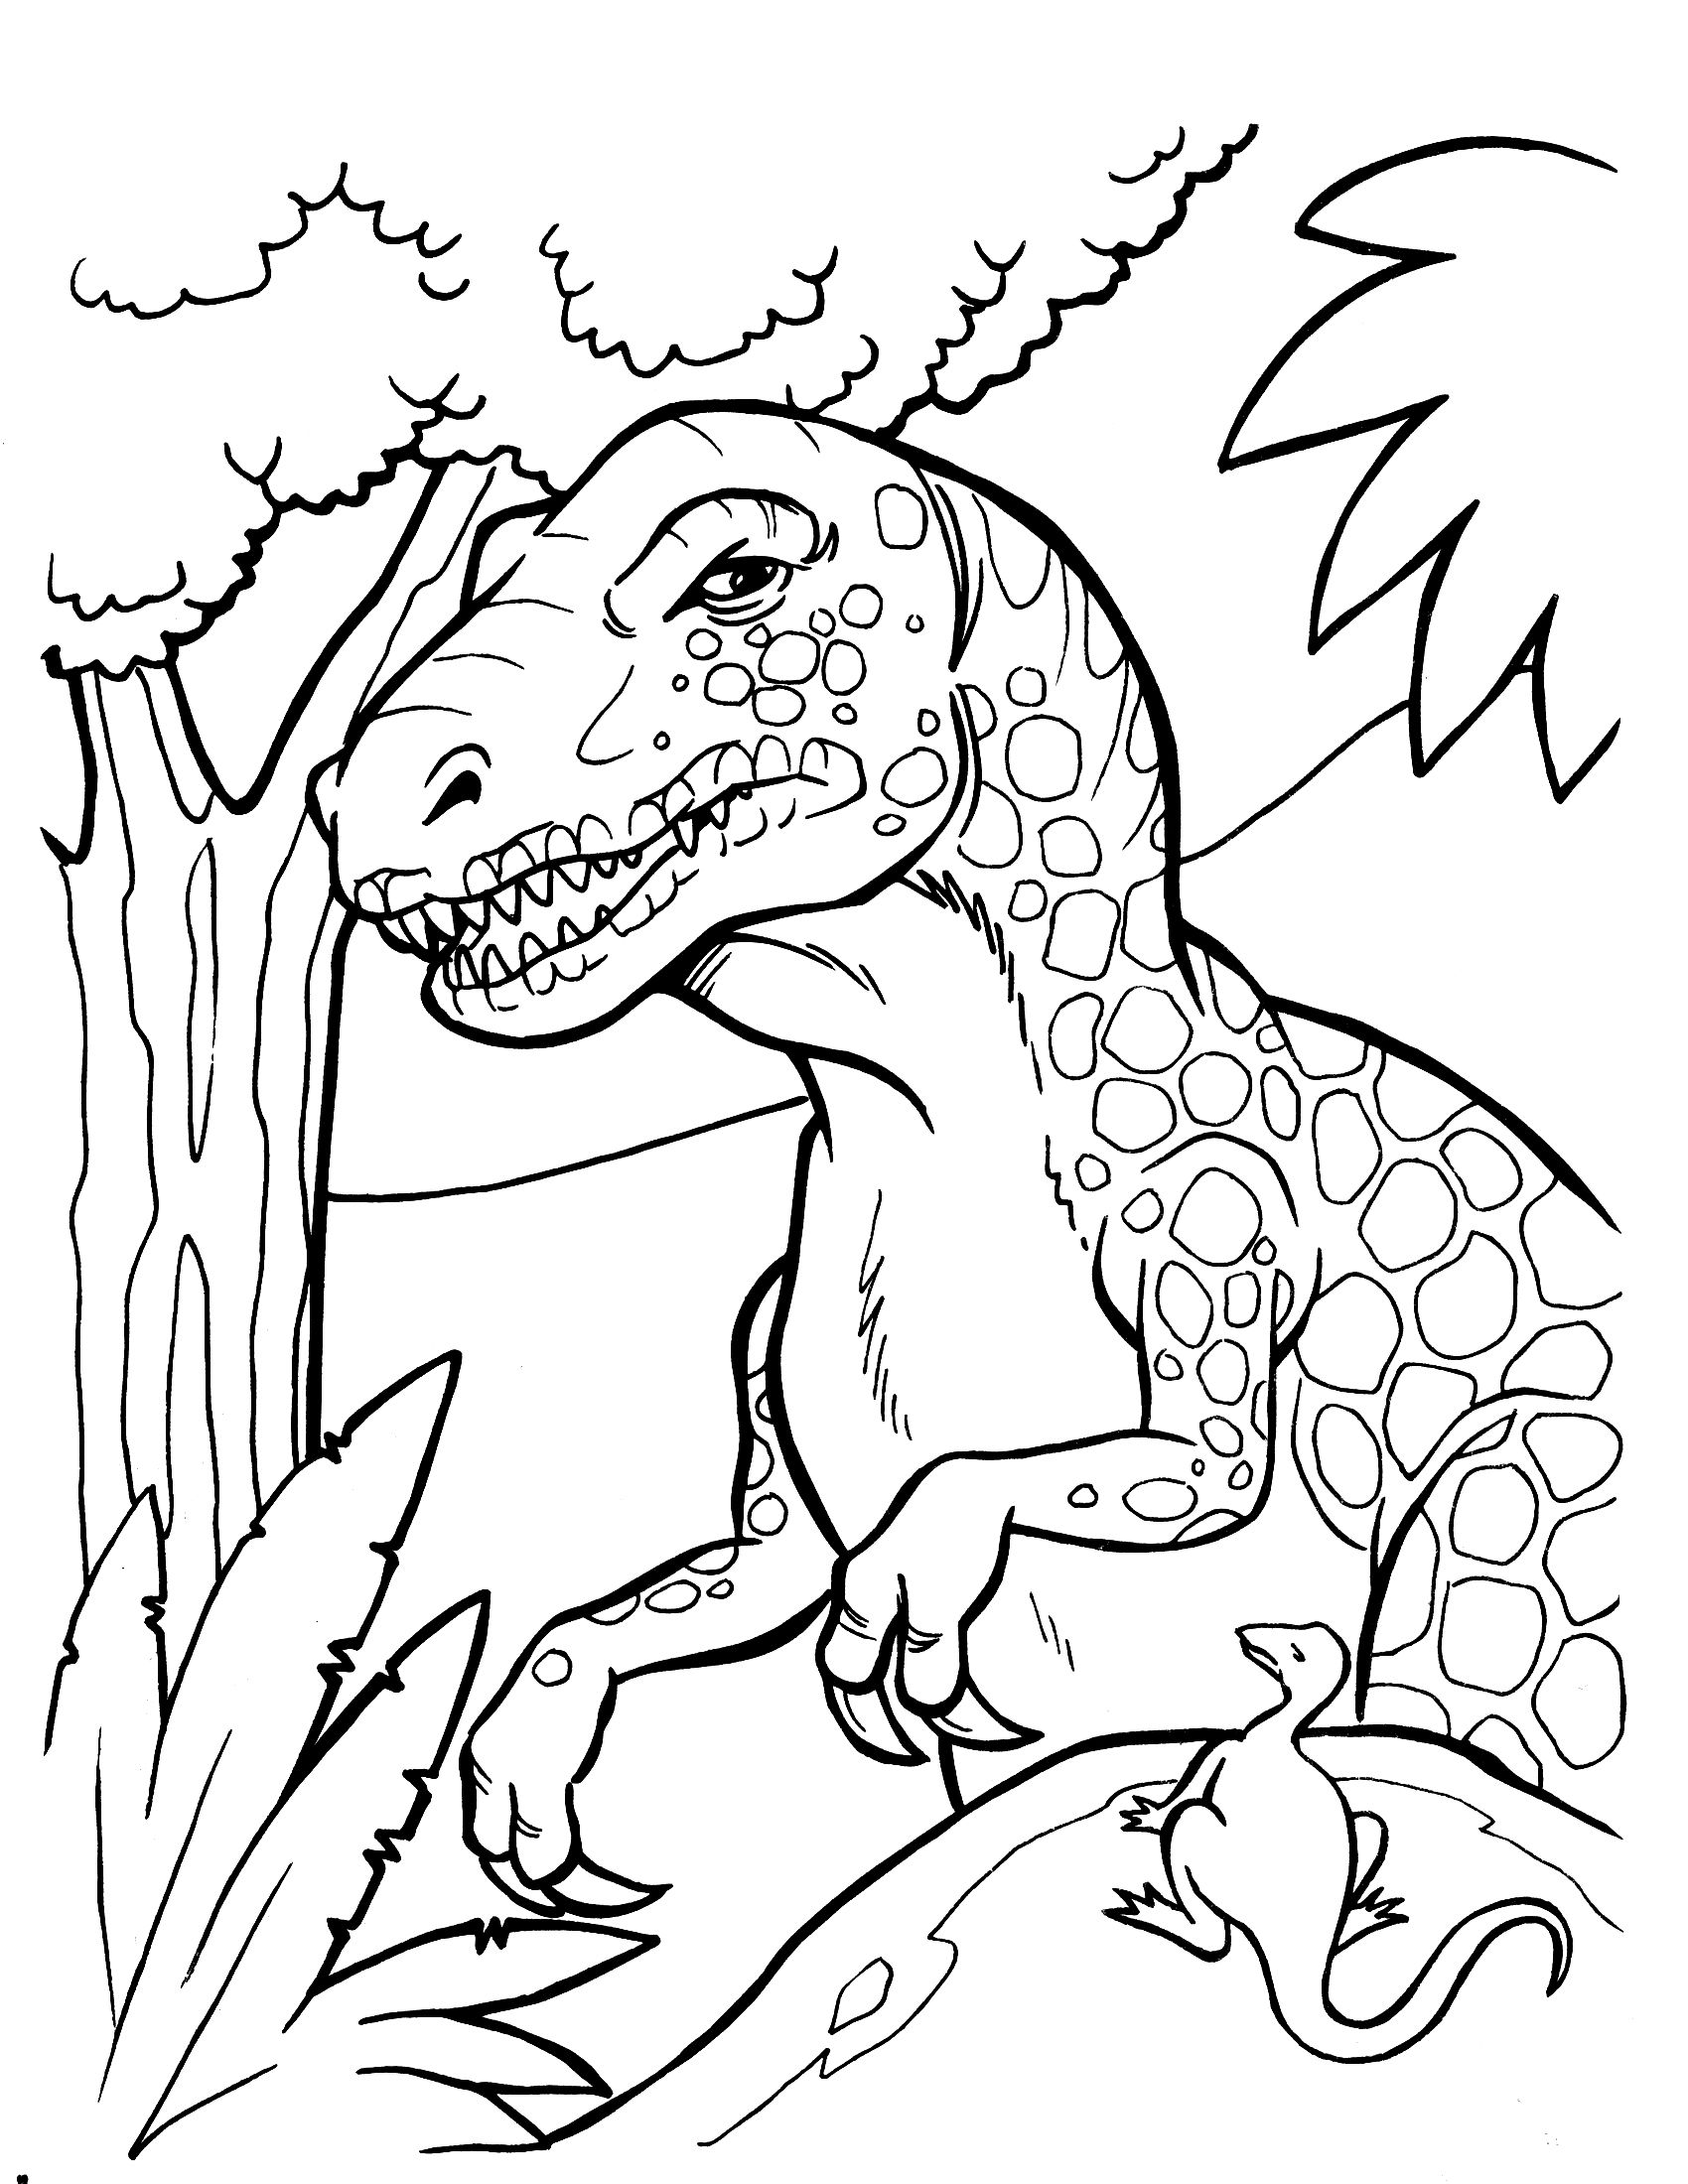 free printable dinosaur coloring pages # 5